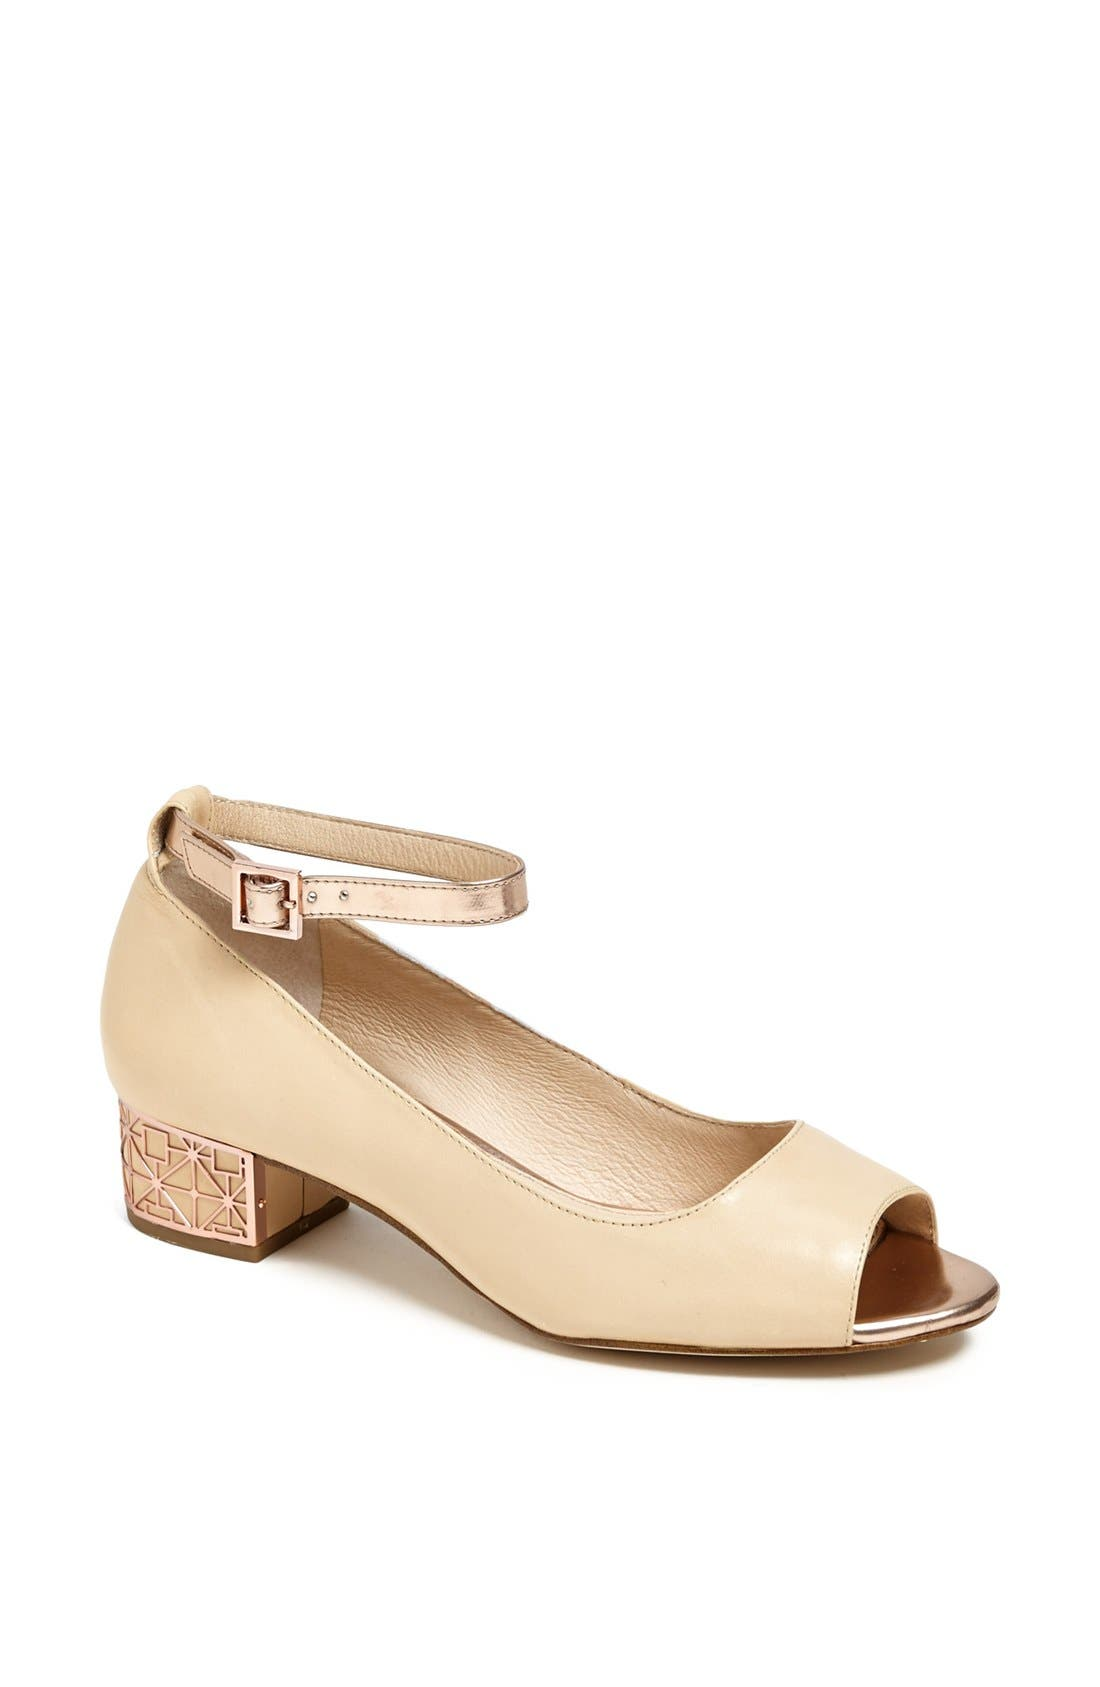 Alternate Image 1 Selected - Louise et Cie 'Jamaicah' Ankle Strap Pump